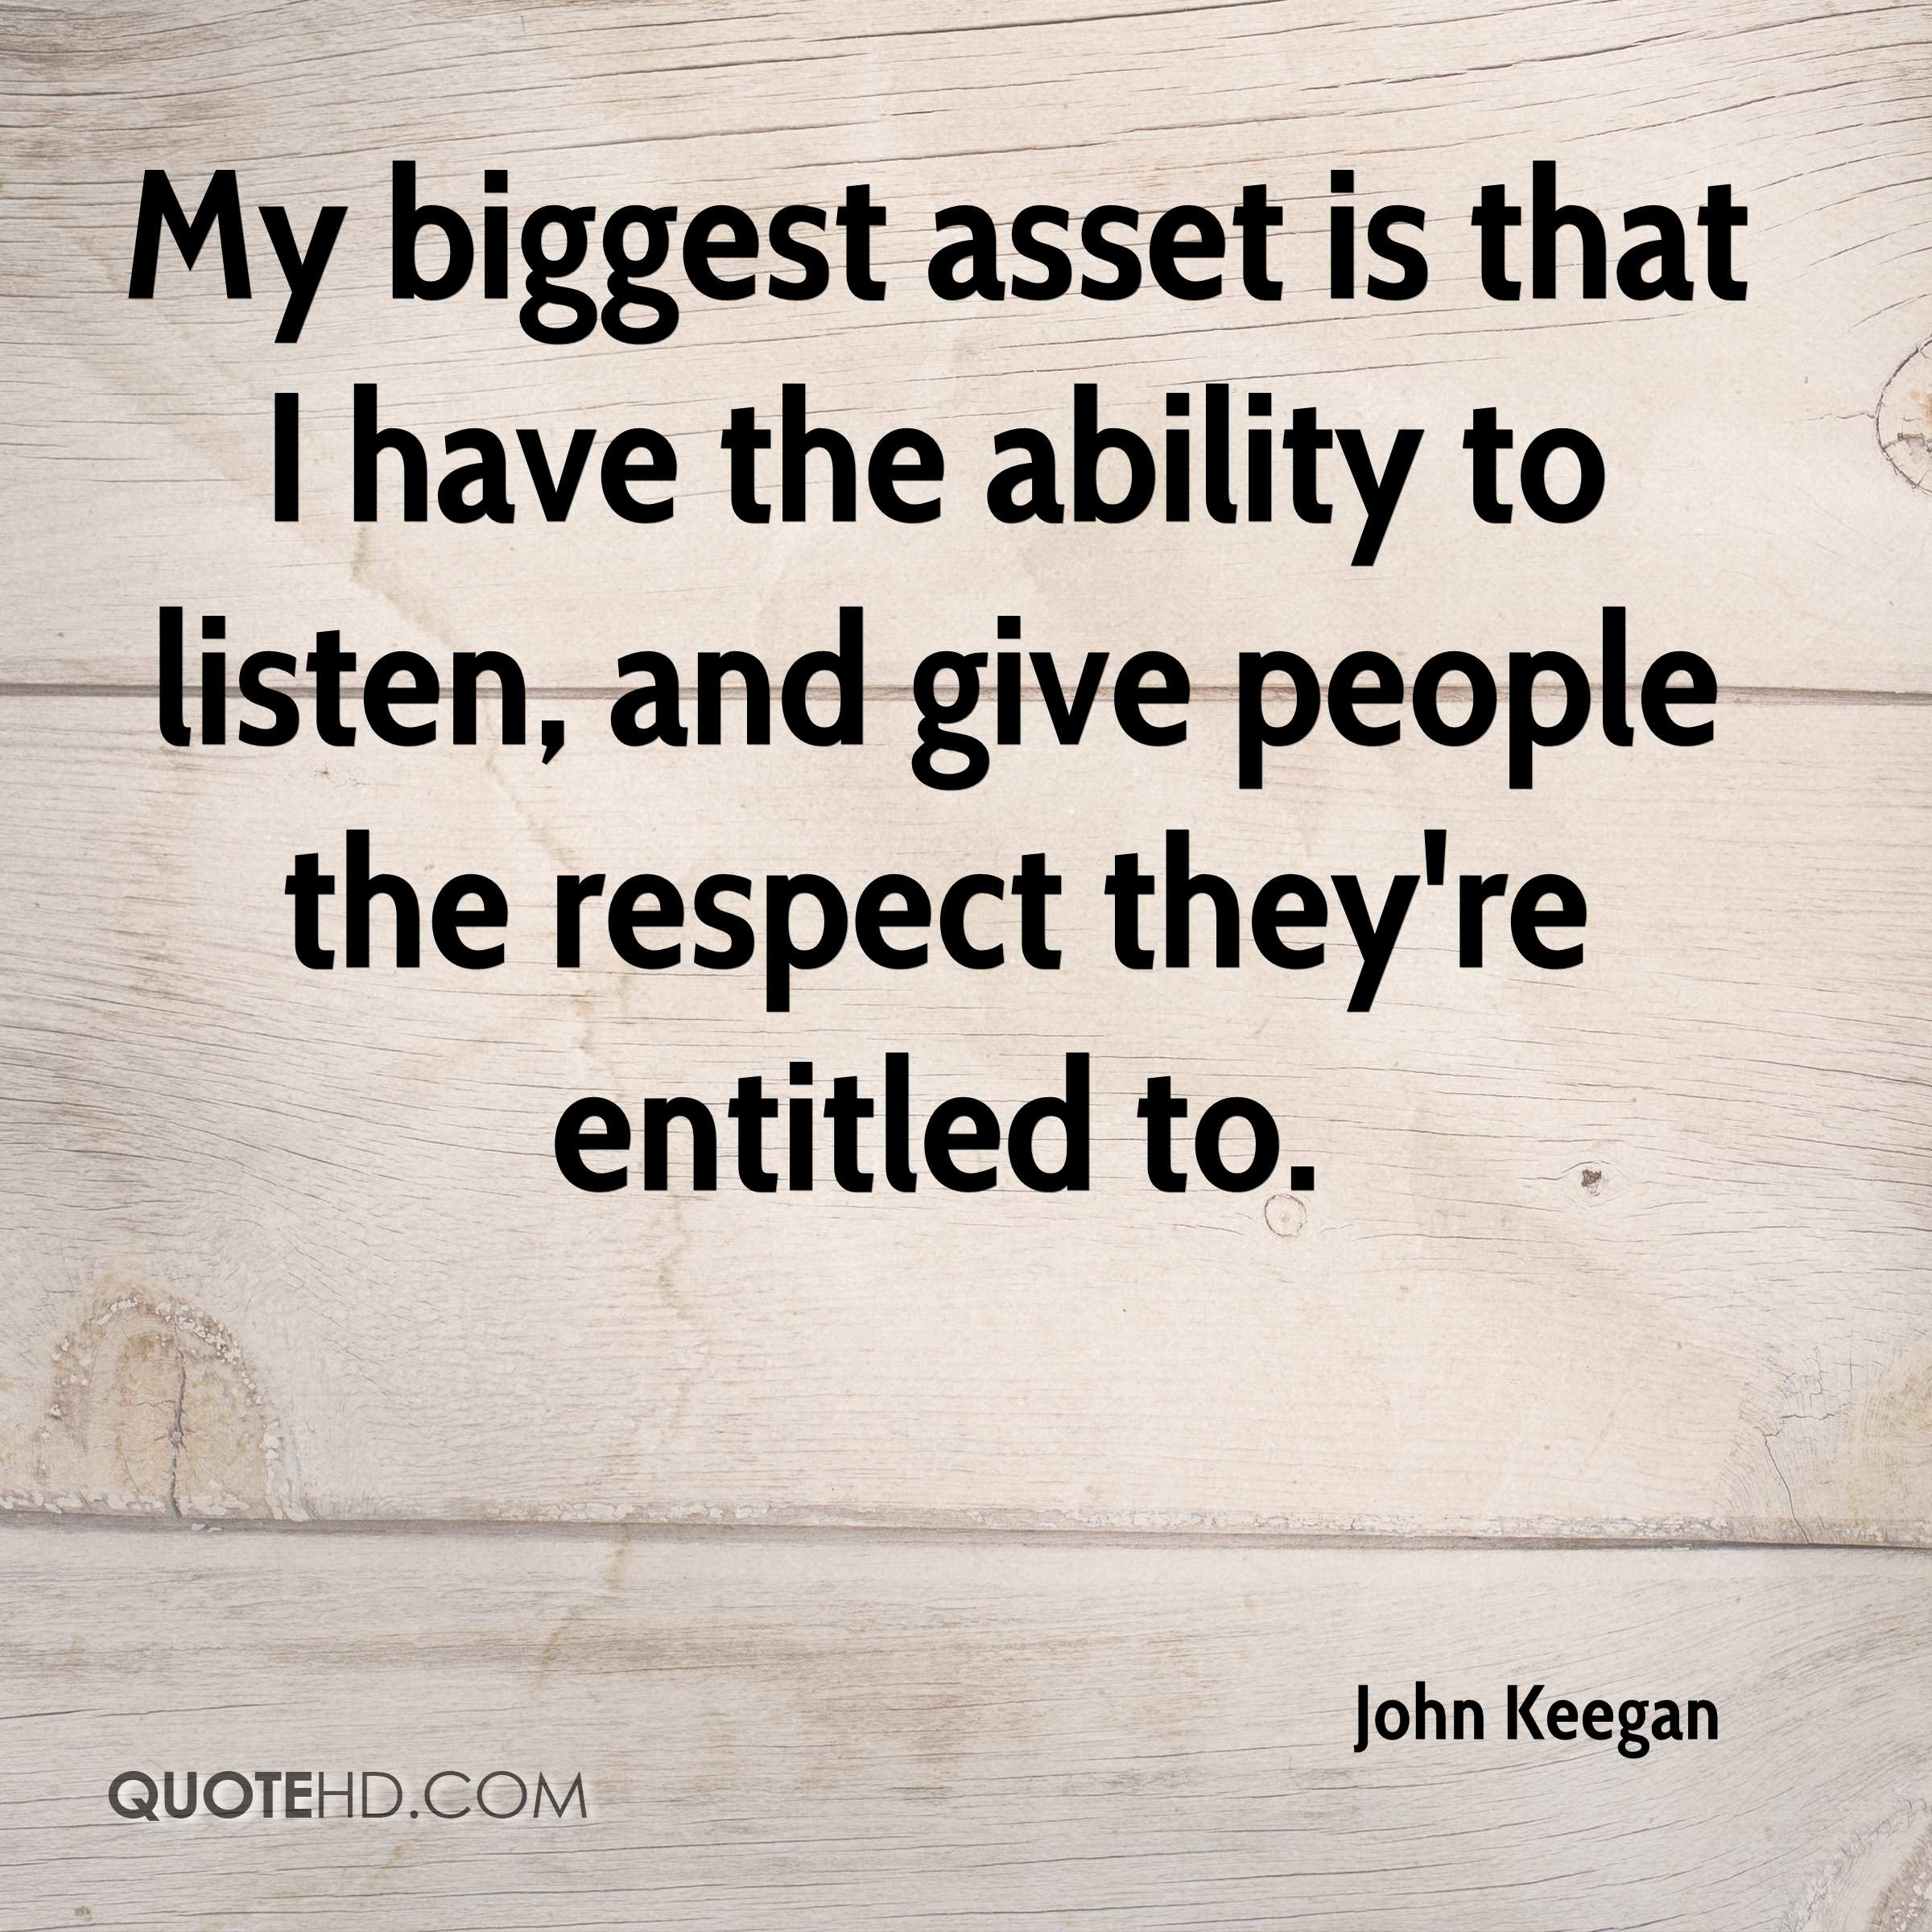 My biggest asset is that I have the ability to listen, and give people the respect they're entitled to.